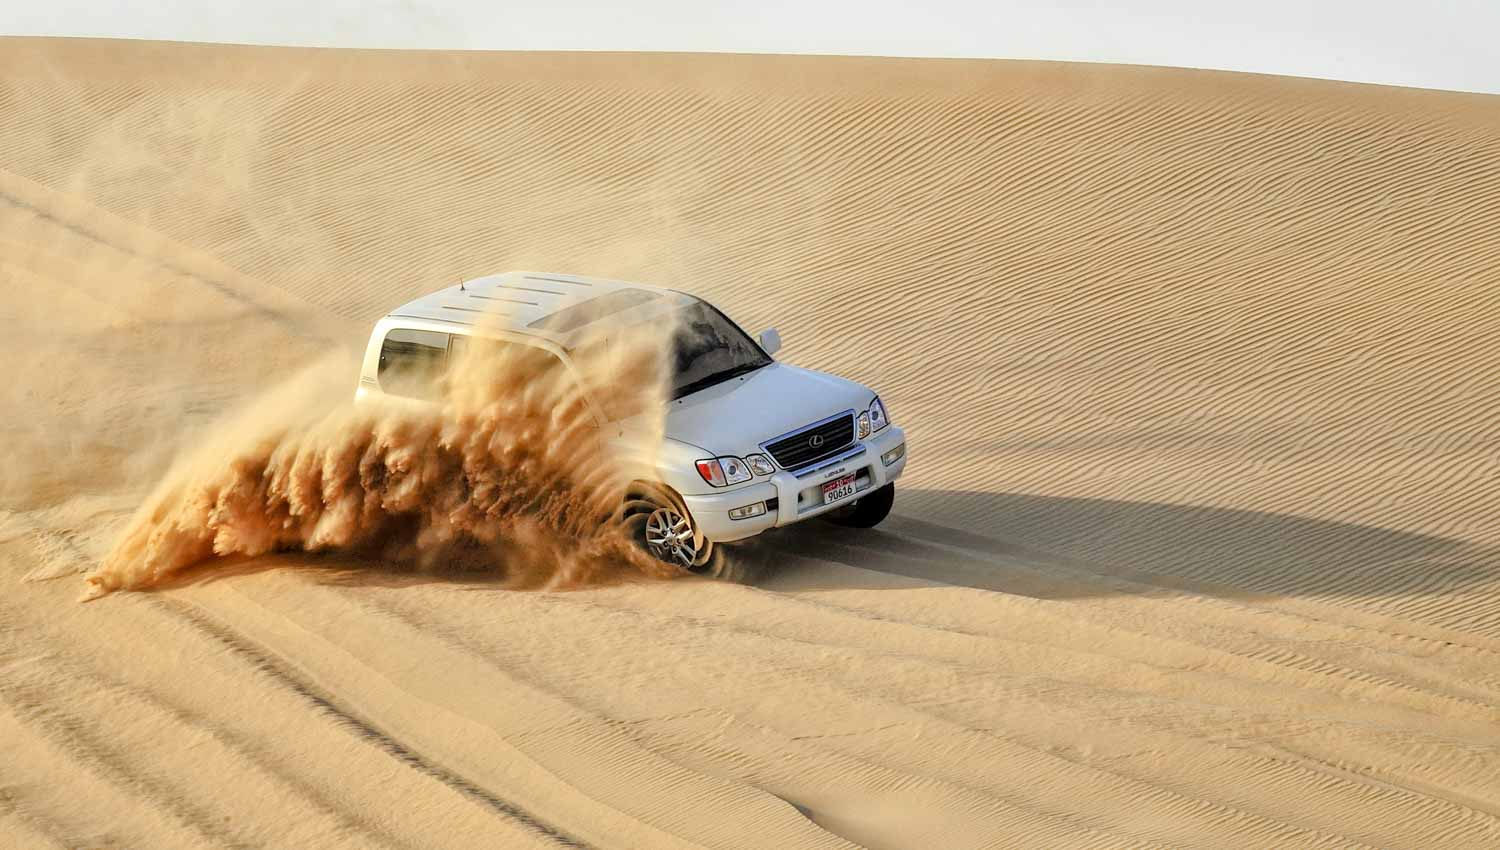 Bash the dunes in a 4x4